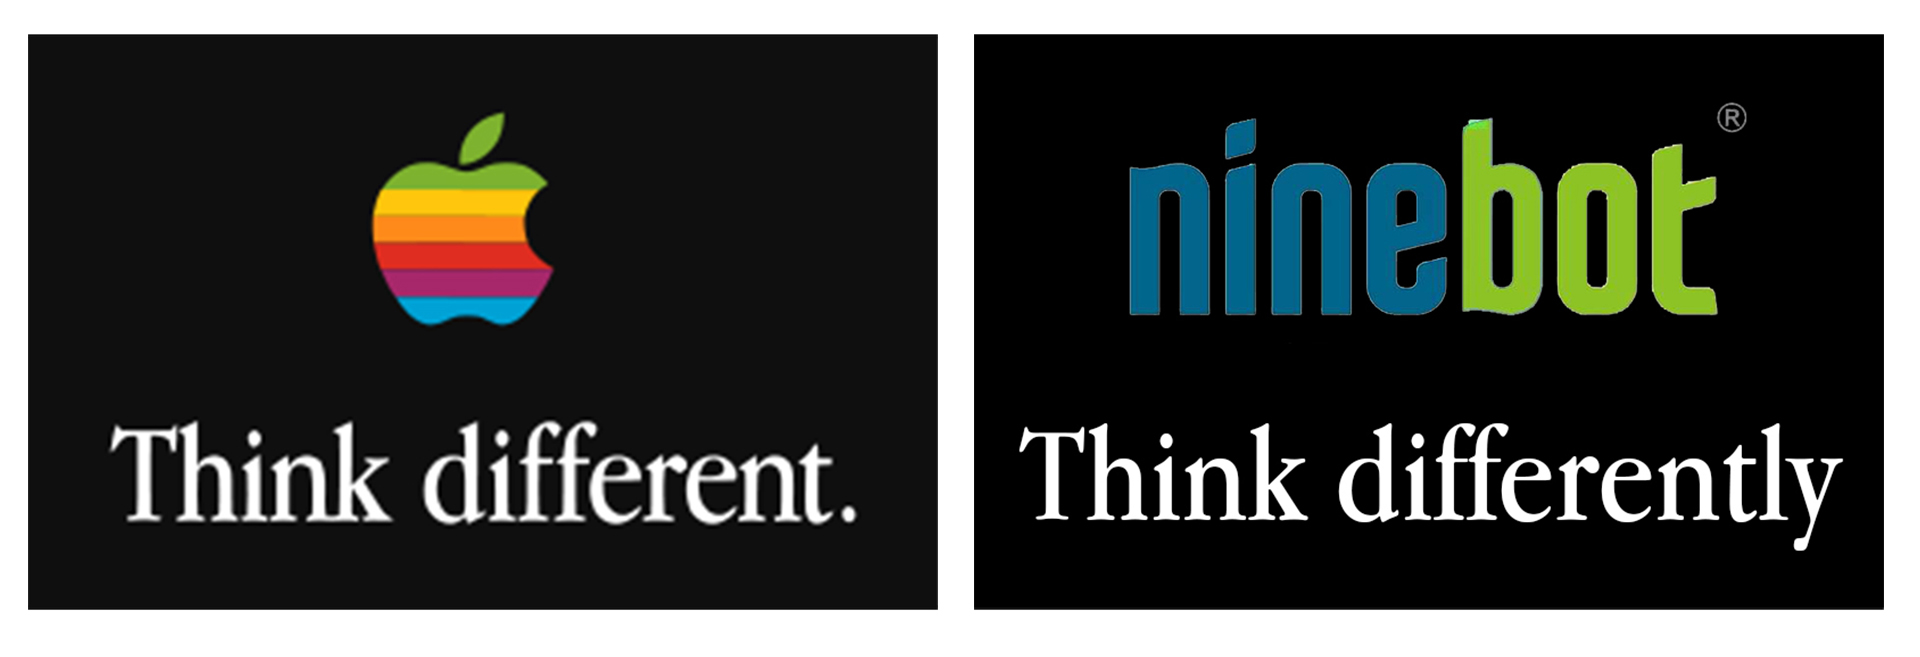 Ninebot's motto - committed to innovation